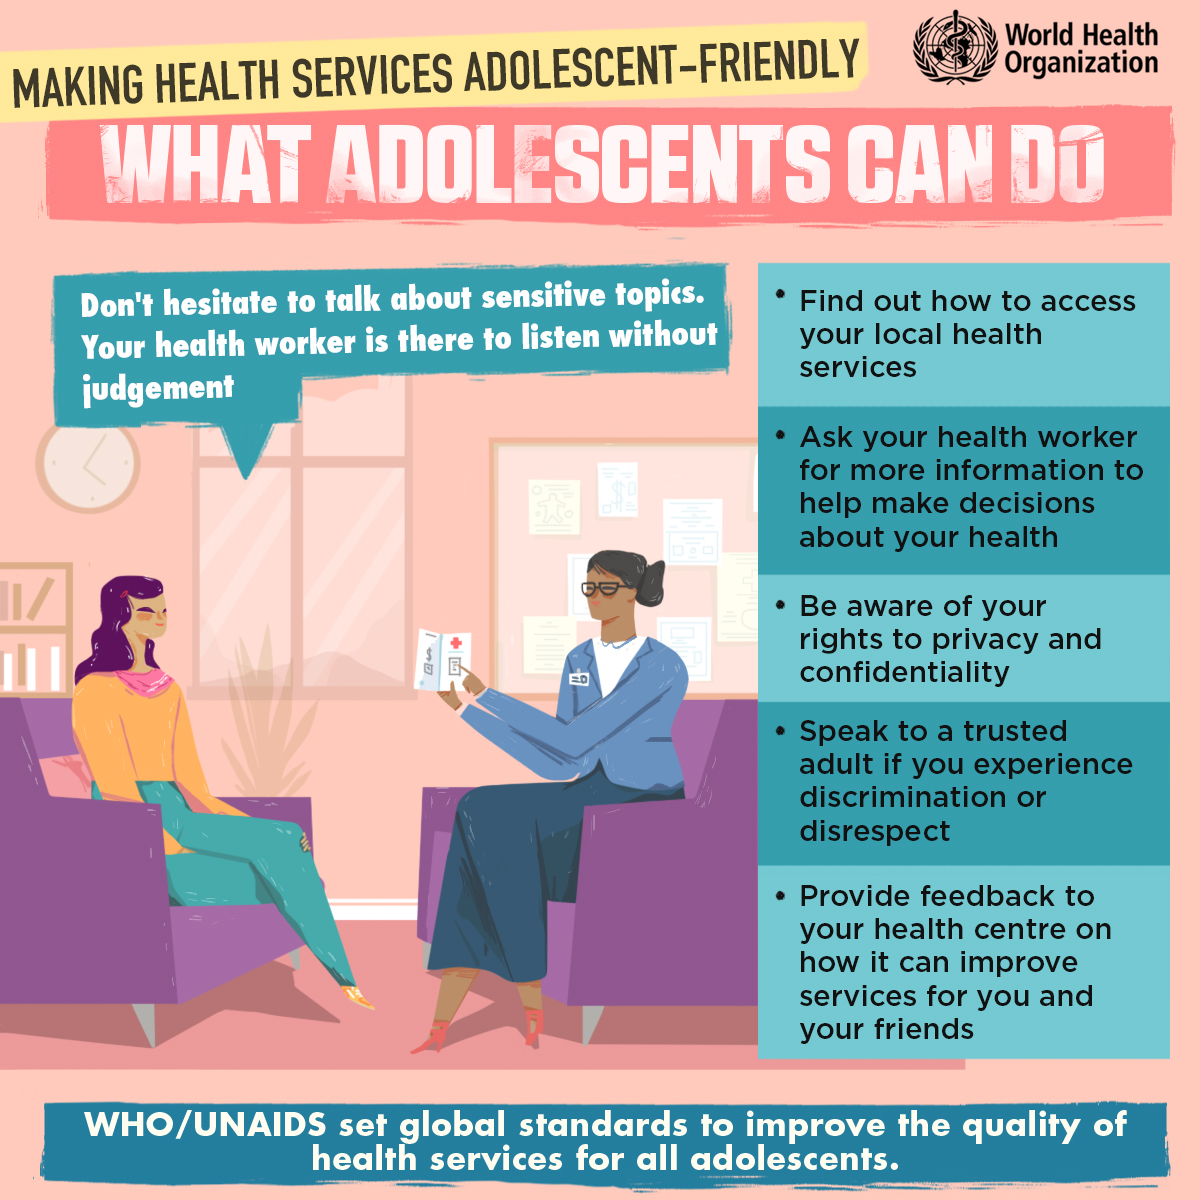 Making health services adolescent-friendly: What adolescents can do